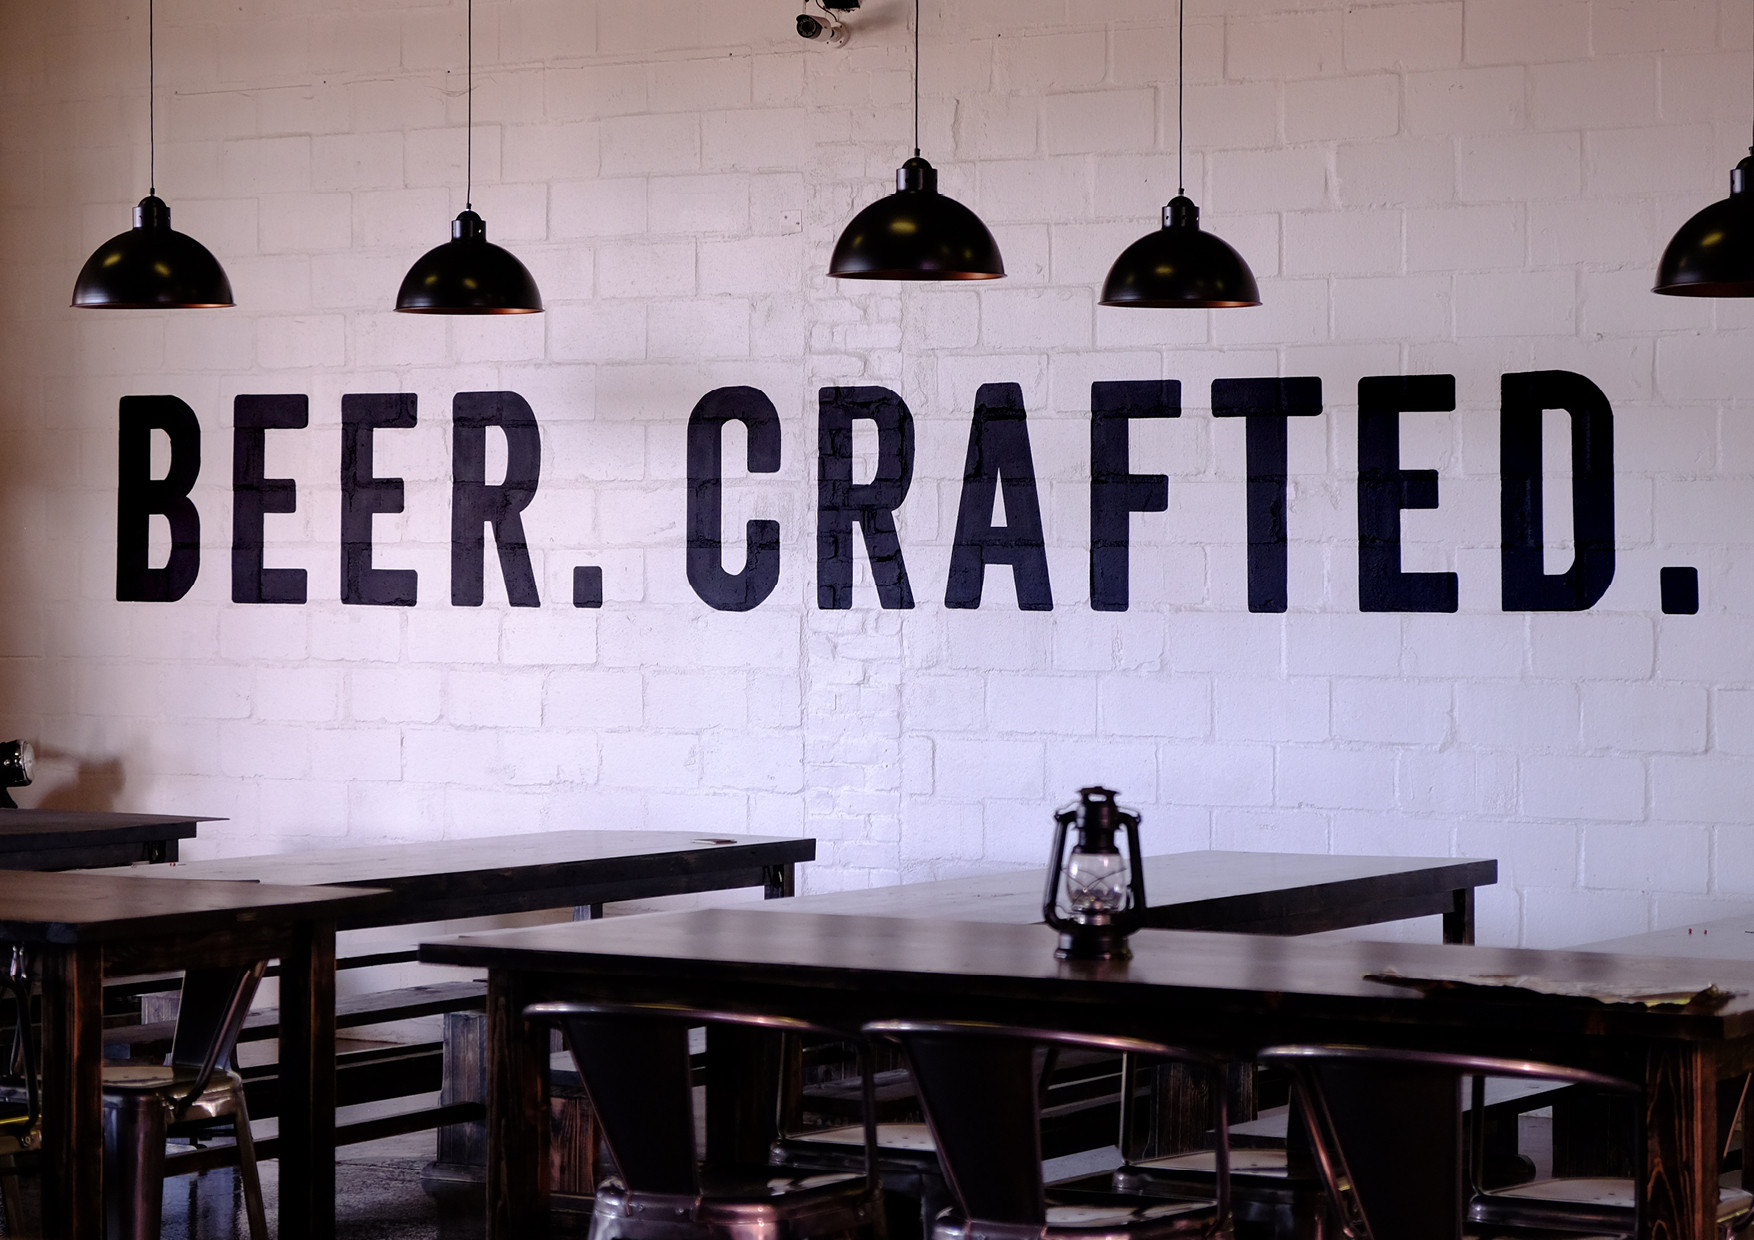 Beer. Crafted